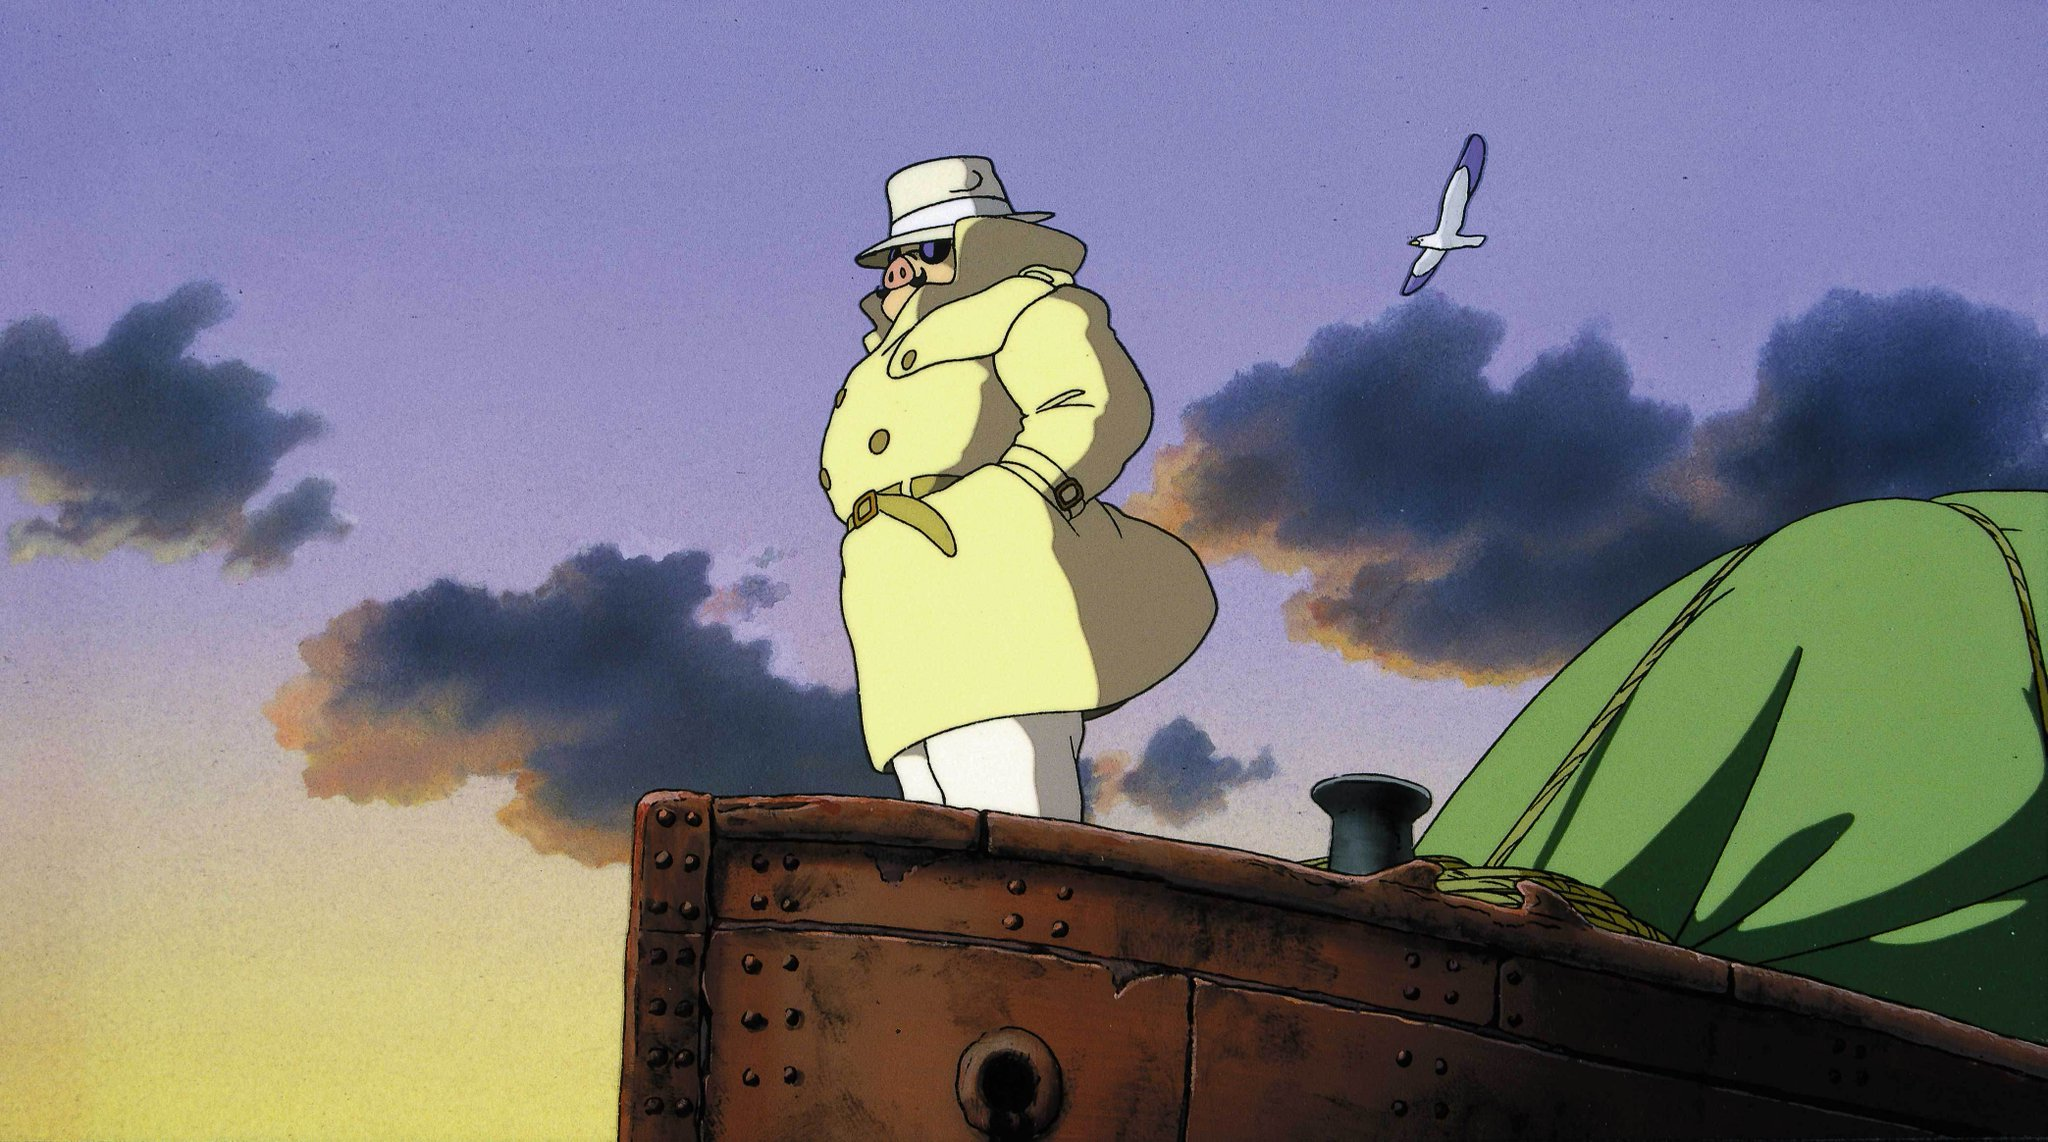 At 11am, a flying ace faces his deadliest opponent in Studio Ghibli's airborne animated adventure Porco Rosso. https://t.co/C5Mh5ns3kx